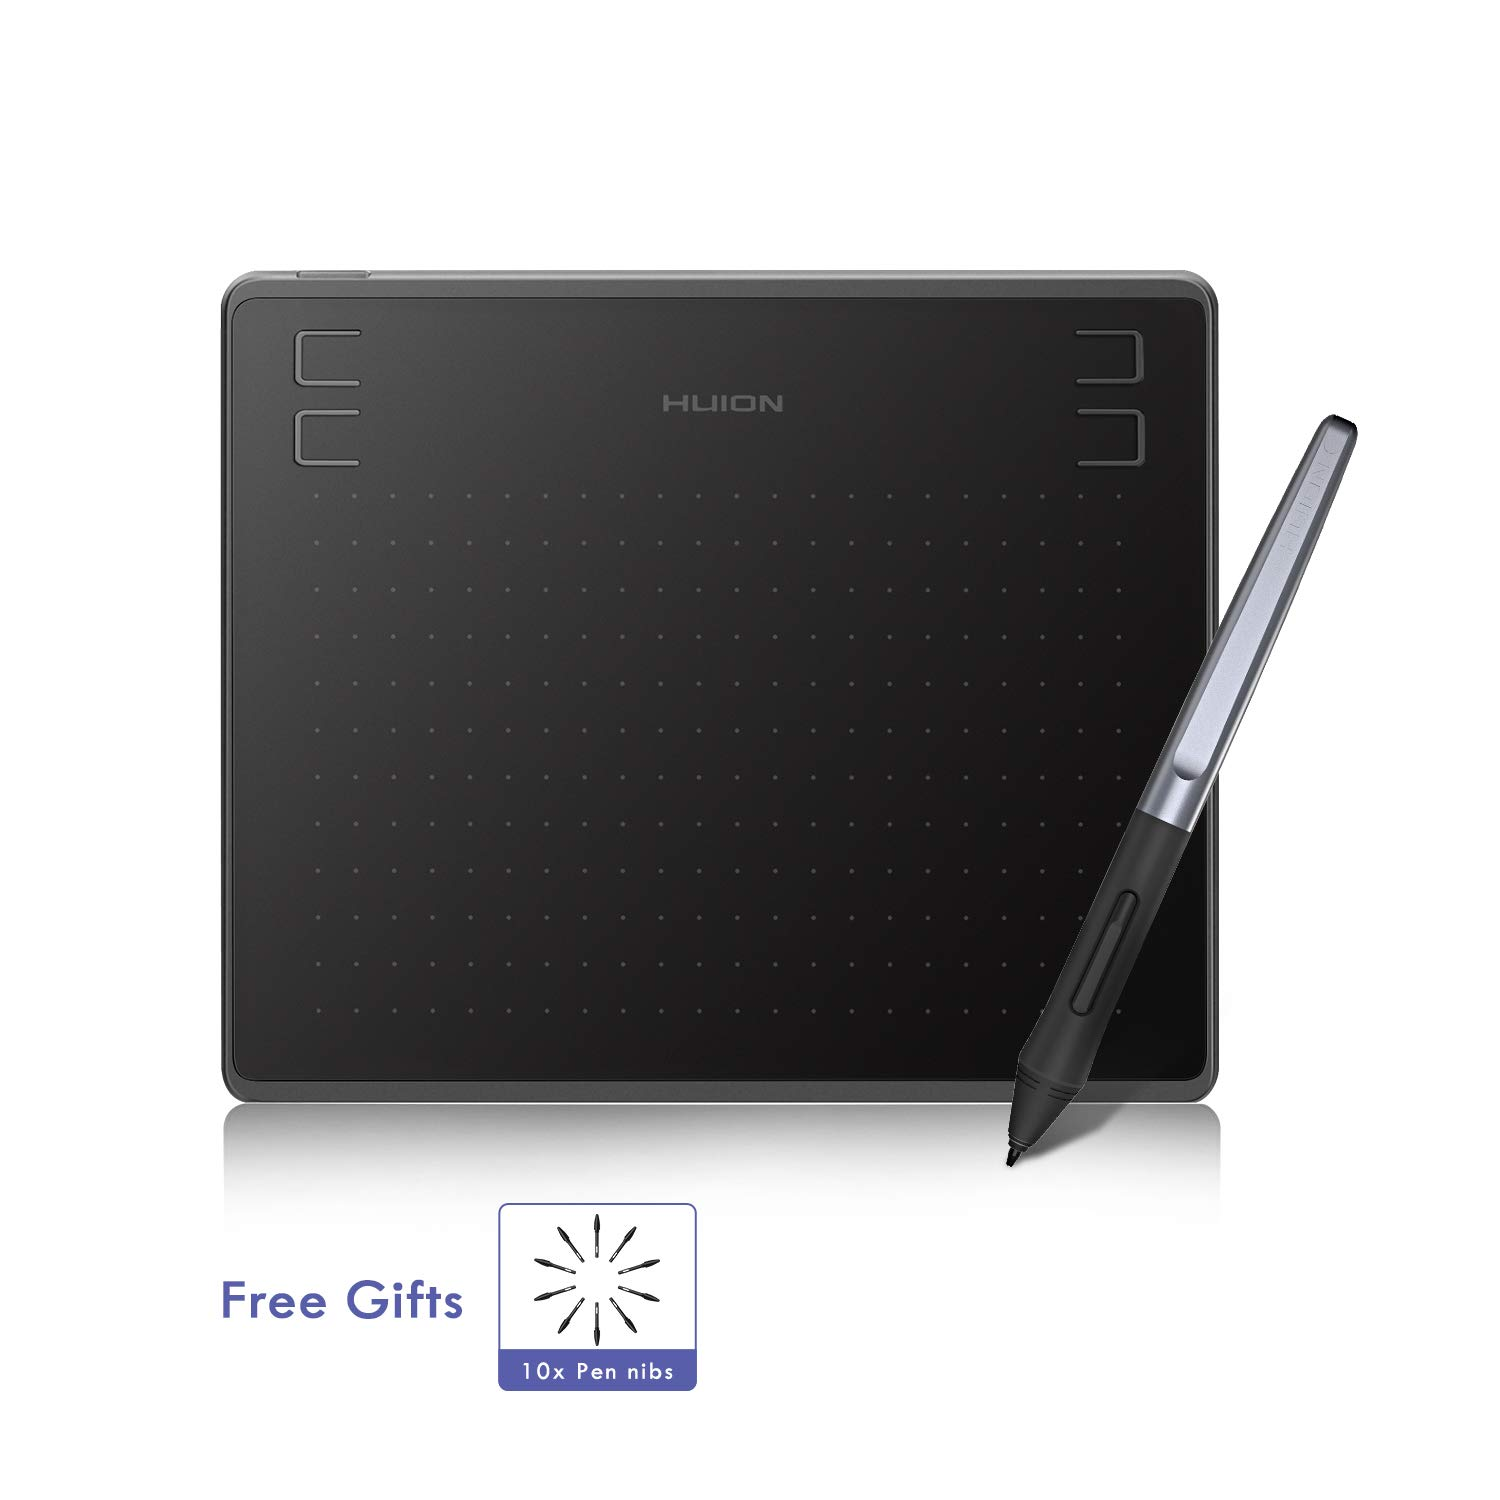 2019 HUION HS64 Drawing Tablet, Graphics Tablet with Battery-Free Stylus, 8192 Levels Pressure Sensitivity, 4 Express Keys, 6.3x4inch Digital Art Tablet for Android Windows Mac